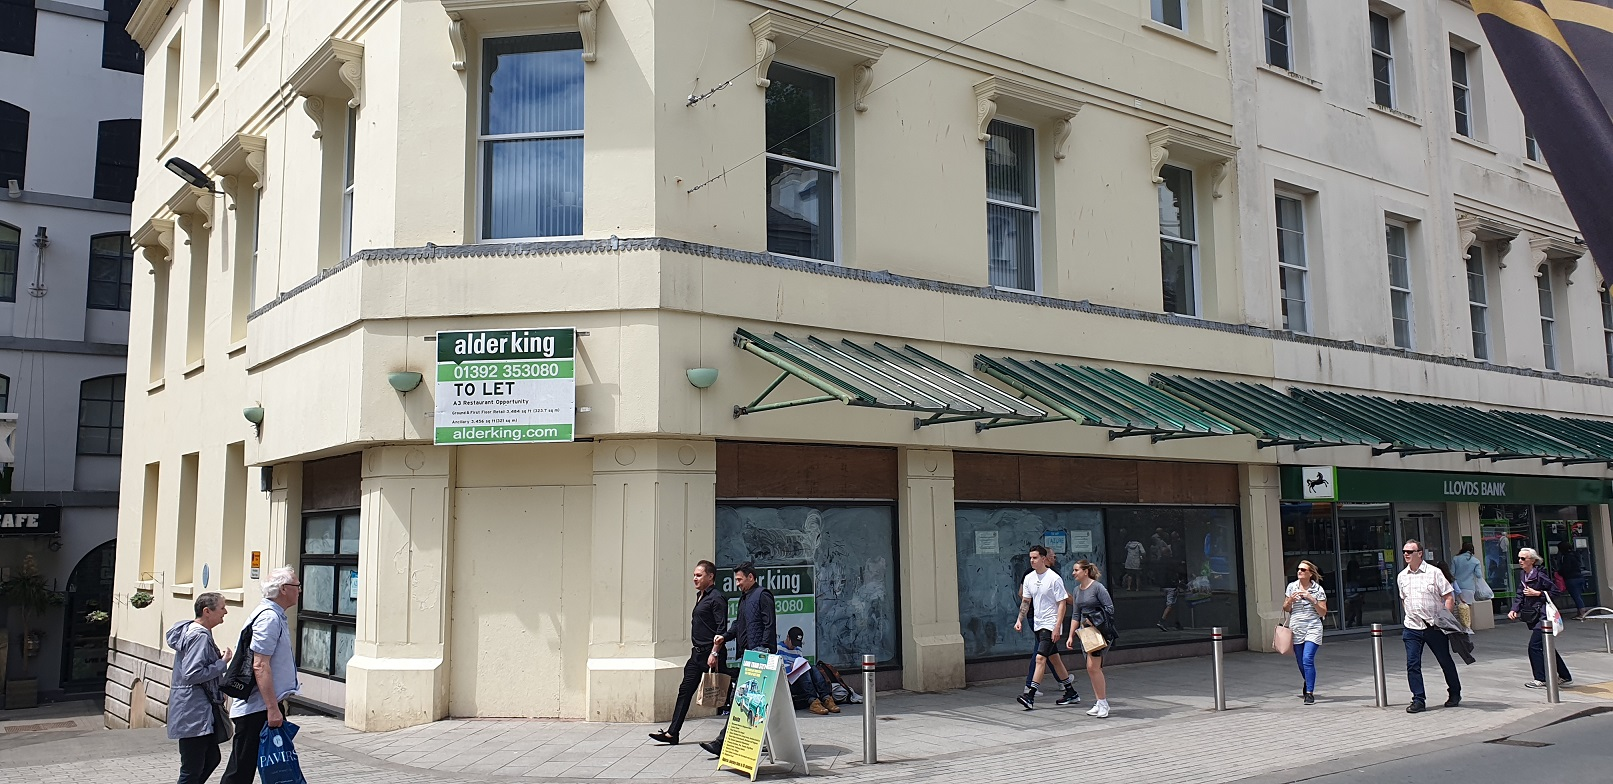 0 bed Commercial Property for rent in Torquay. From Azure Property Consultants